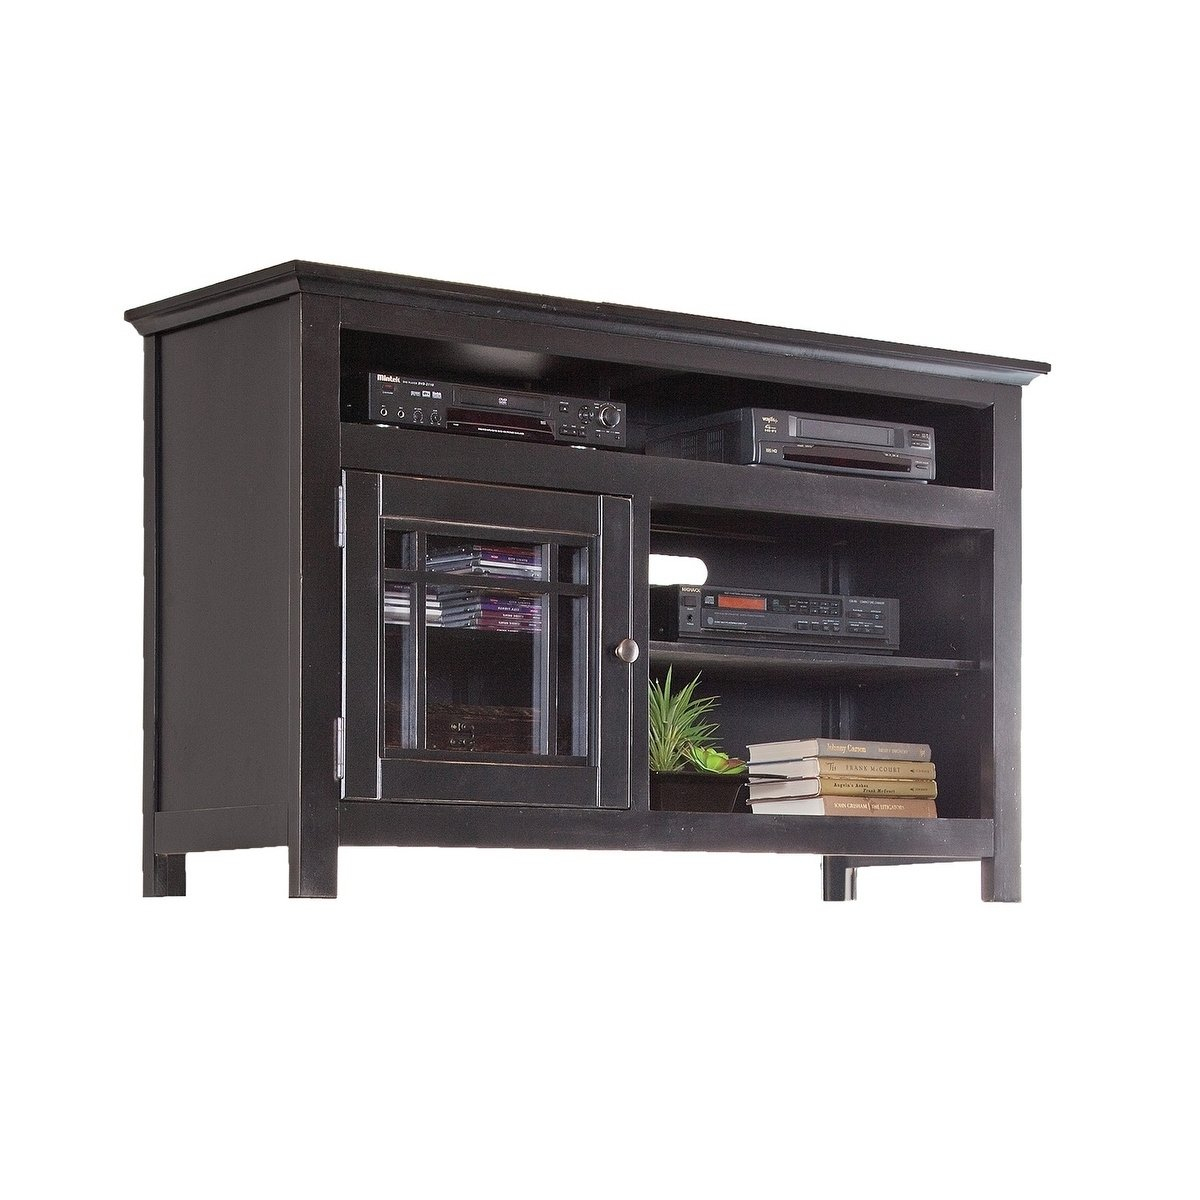 Shop Emerson Hills 54 Inch Tv Console - Free Shipping Today intended for Canyon 54 Inch Tv Stands (Image 23 of 30)